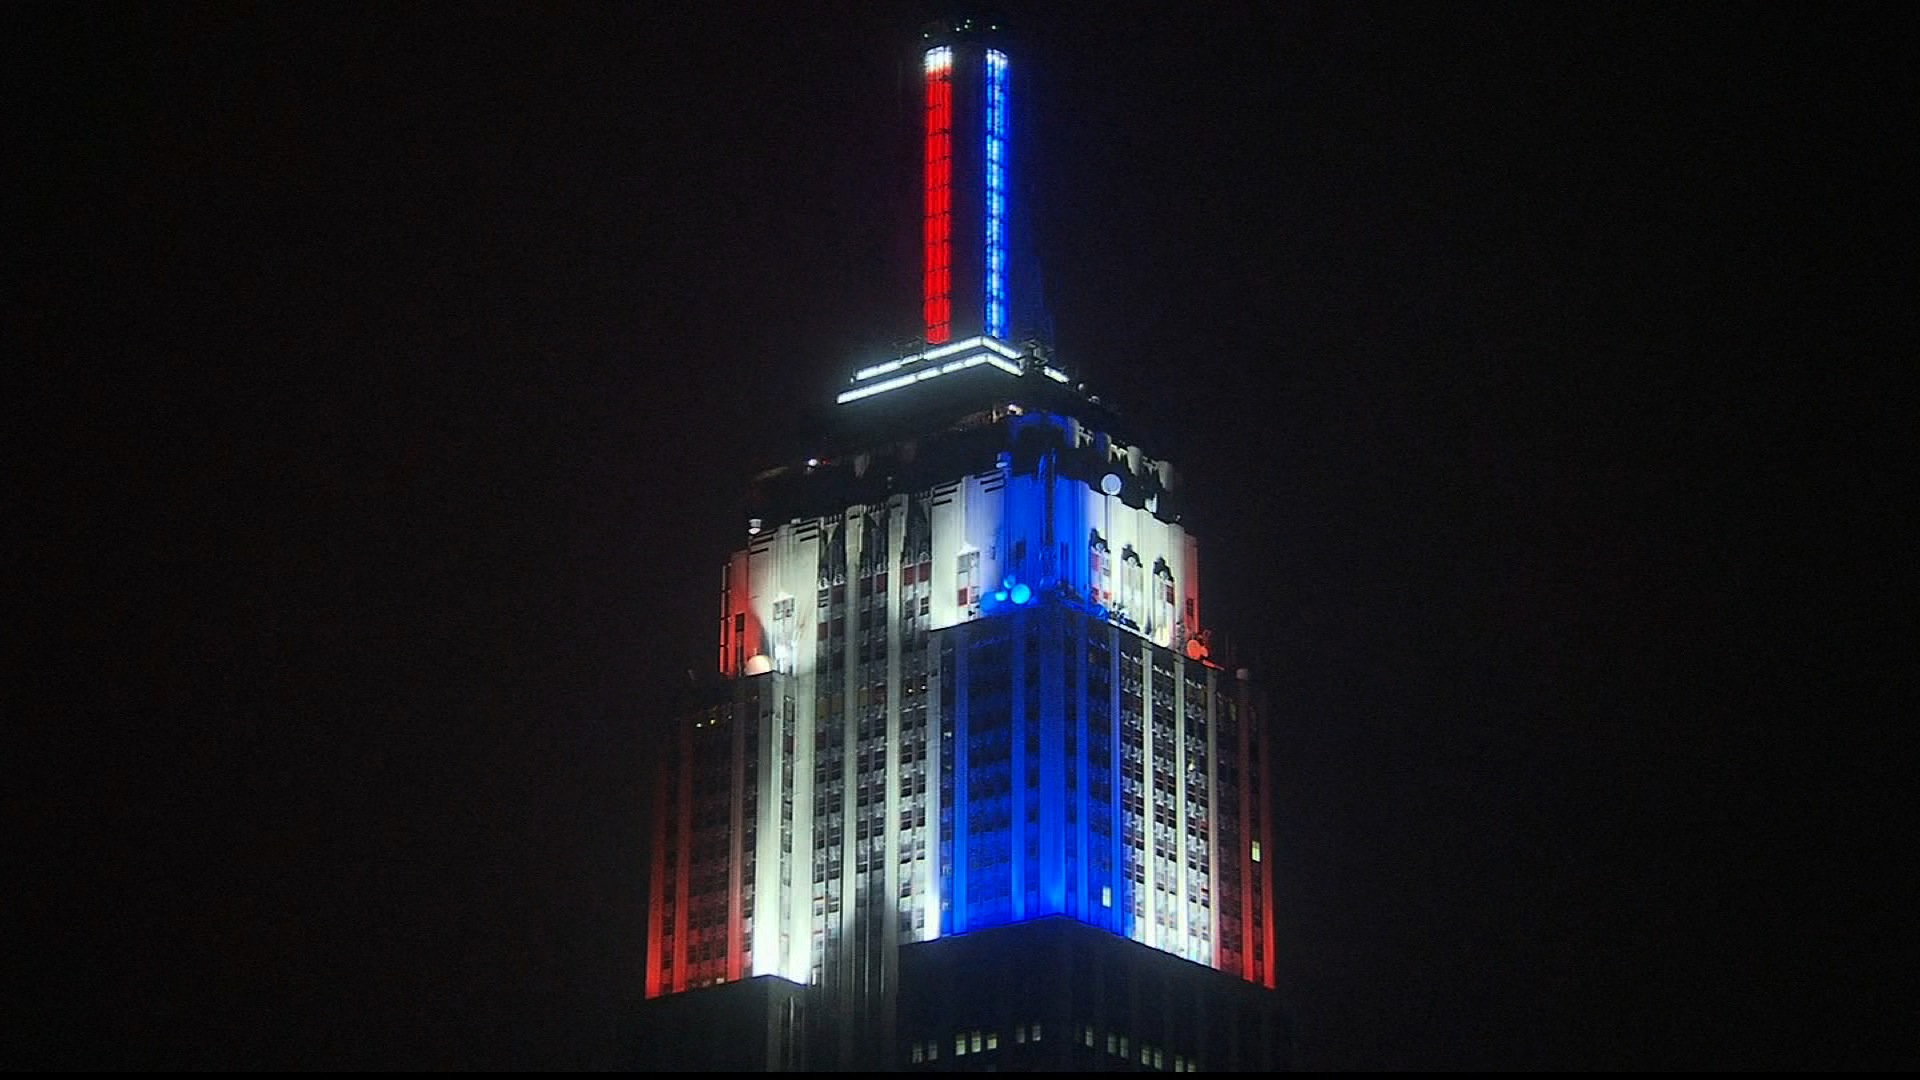 CNN takes over the Empire State Building for election night results